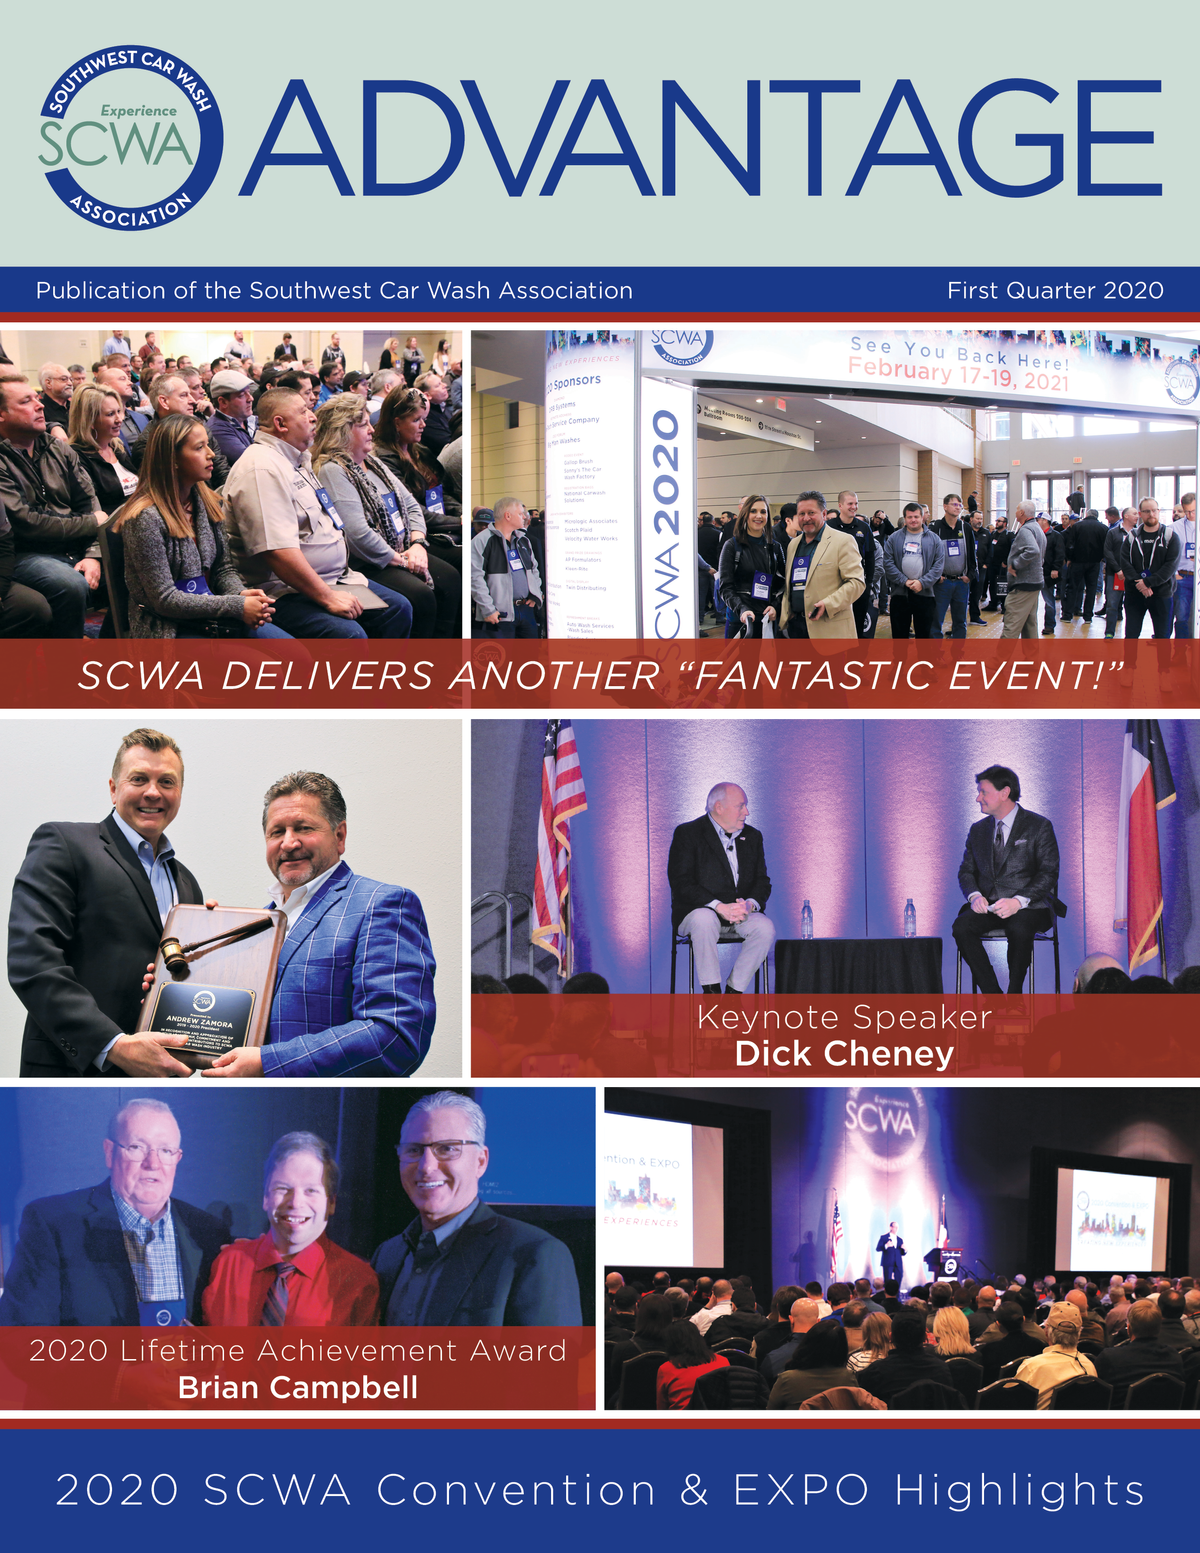 SCWA2020_1stQtr_ADVANTAGE_COVER.png